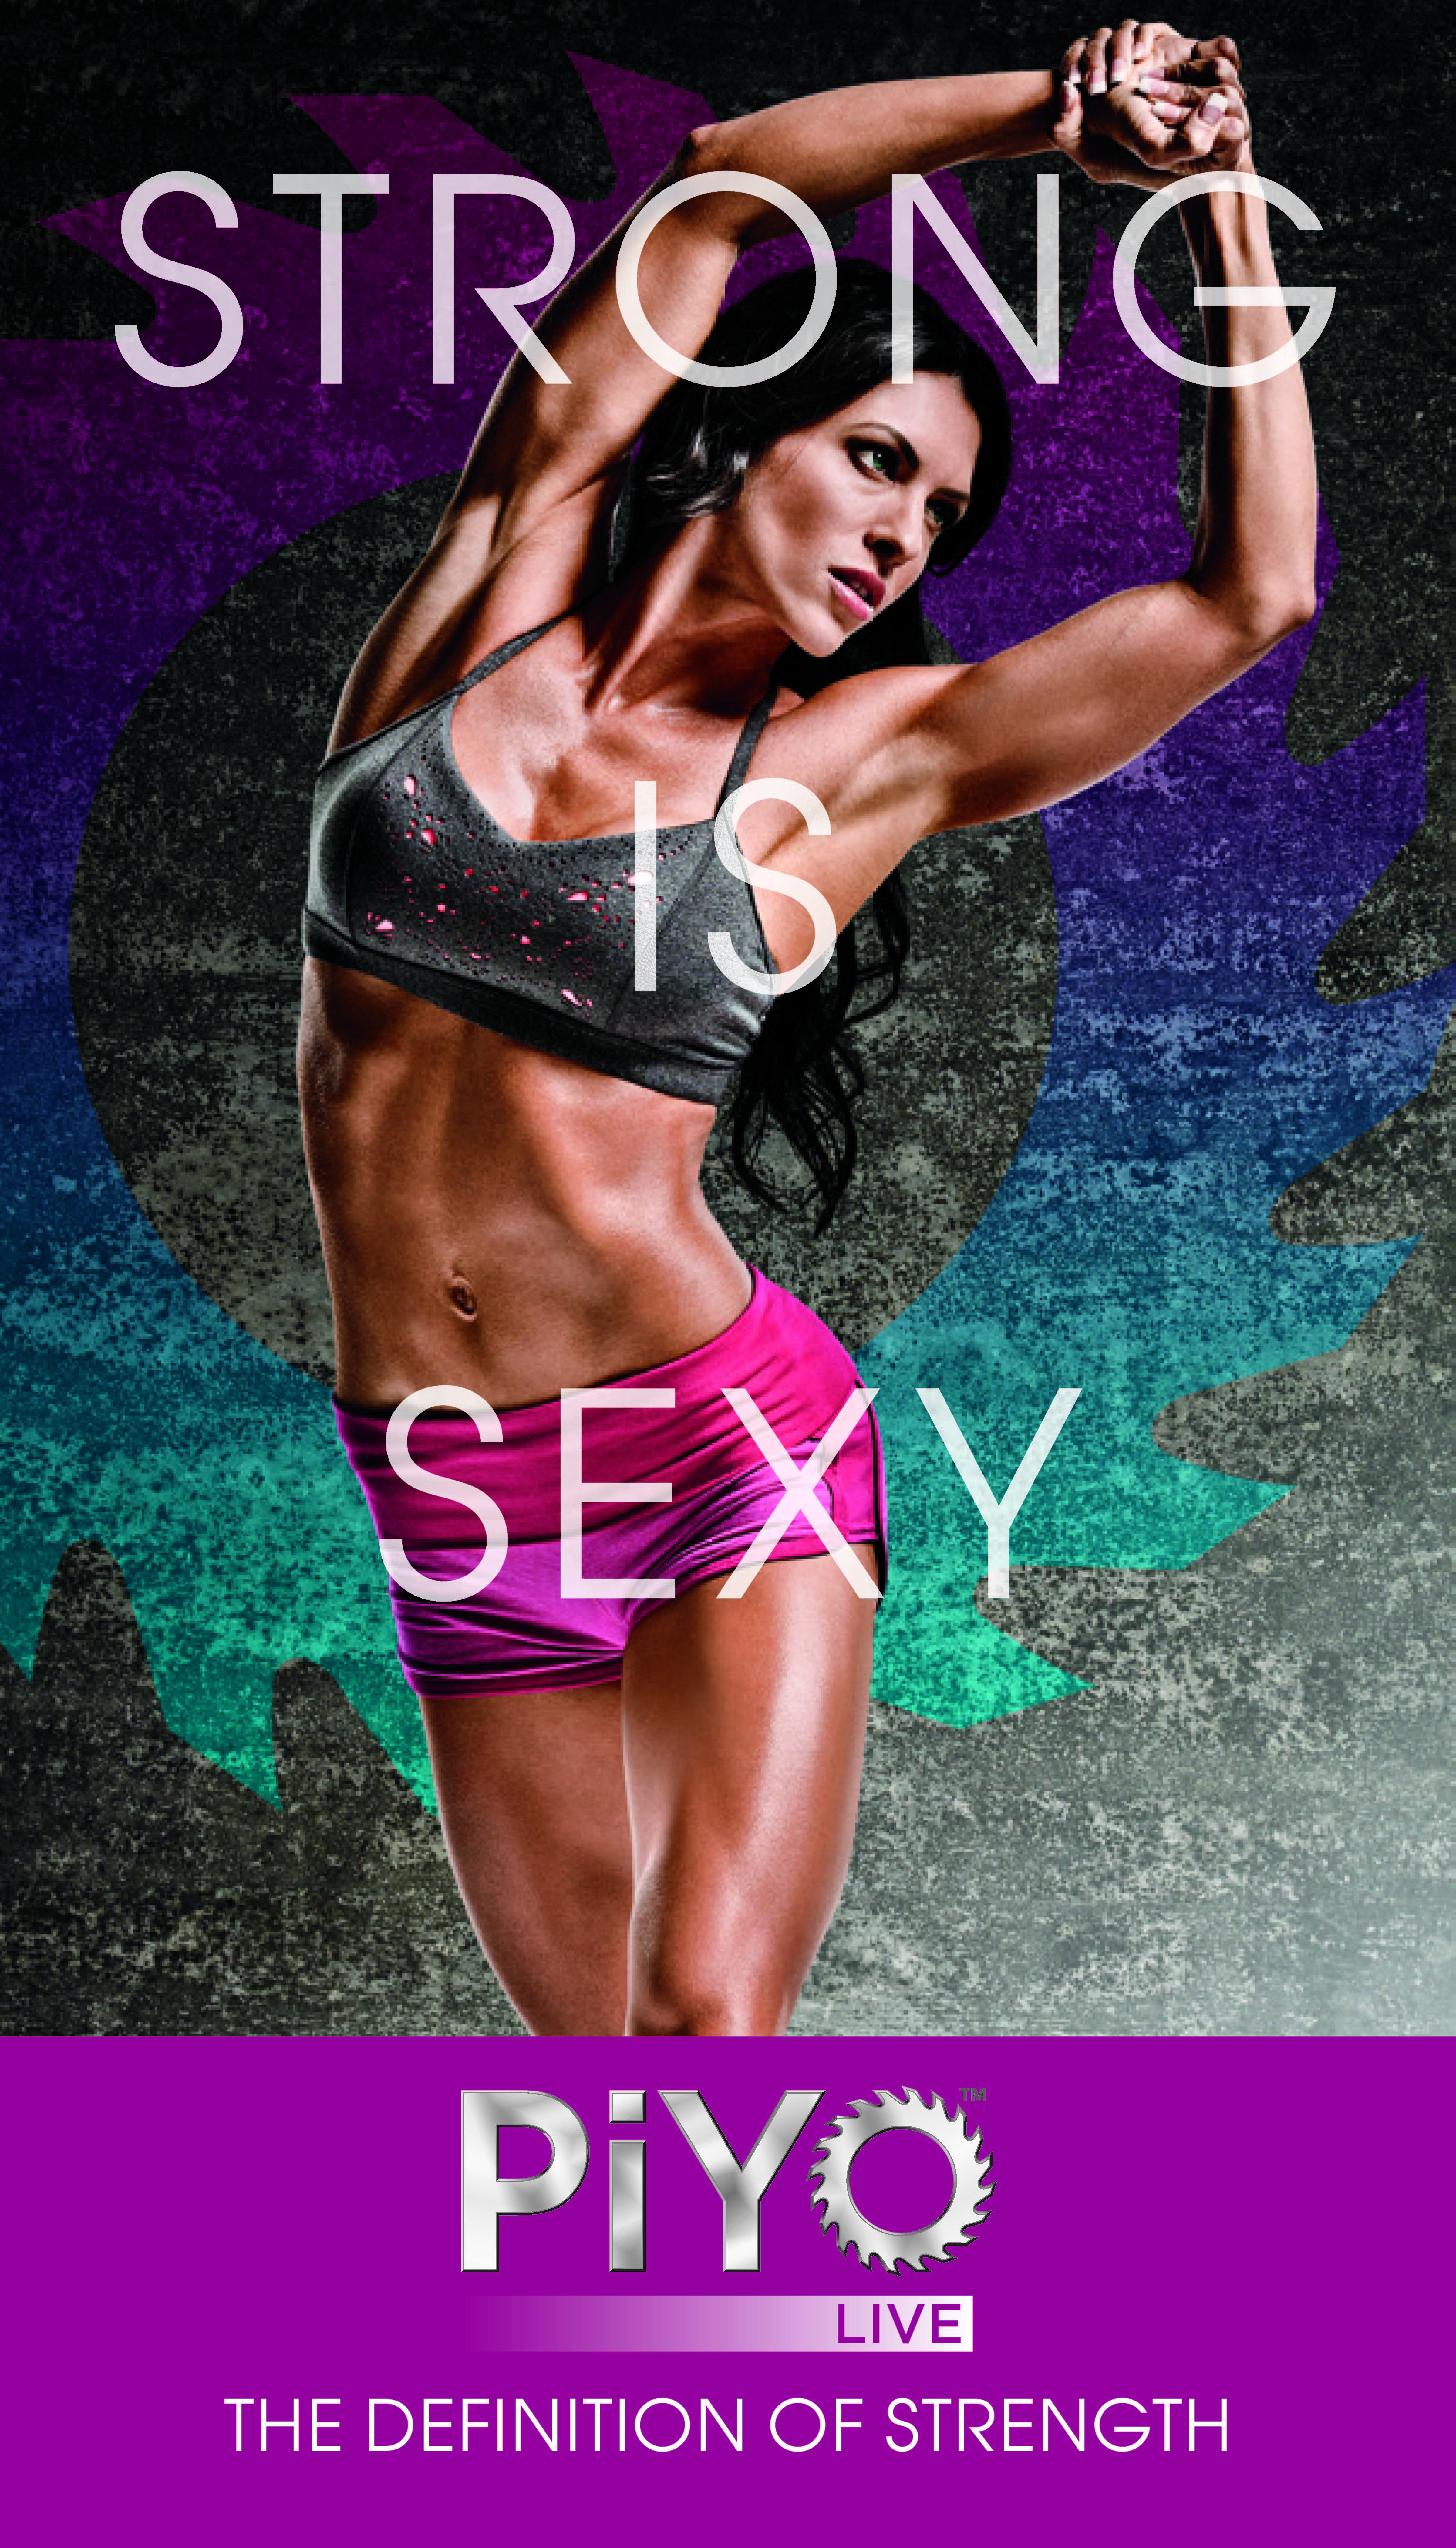 1000+ images about PIYO on Pinterest | Piyo results ...